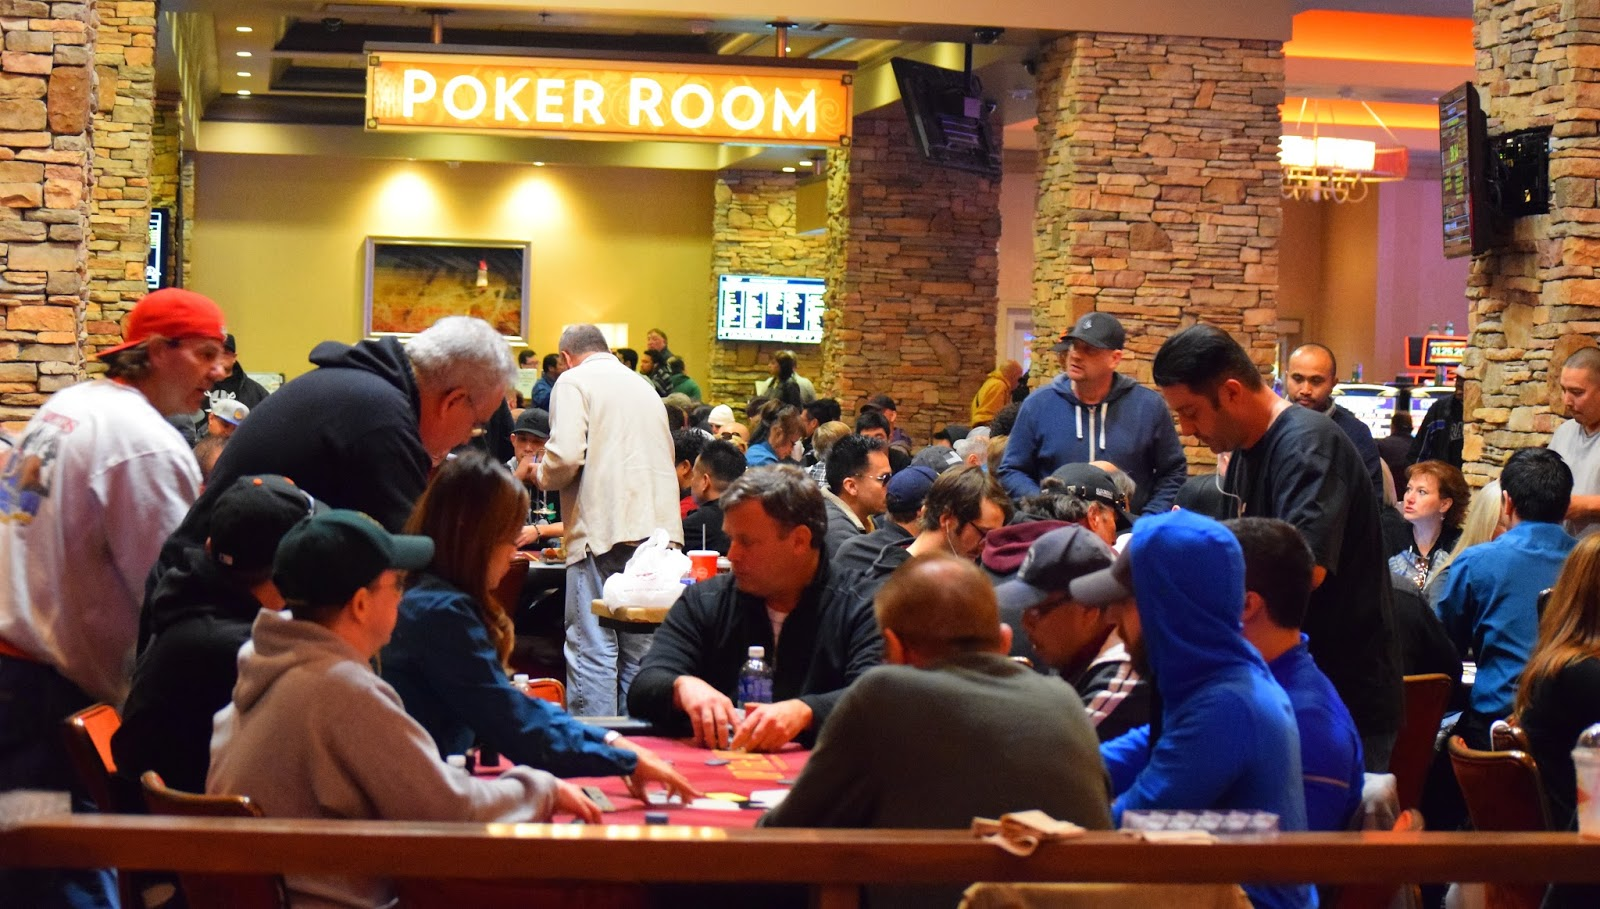 Lincoln, CA, – Thunder Valley Casino Resort hosted an official ribbon cutting ceremony this past Wednesday to commemorate the grand opening of their new 25, square foot state-of-the-art Poker Room.